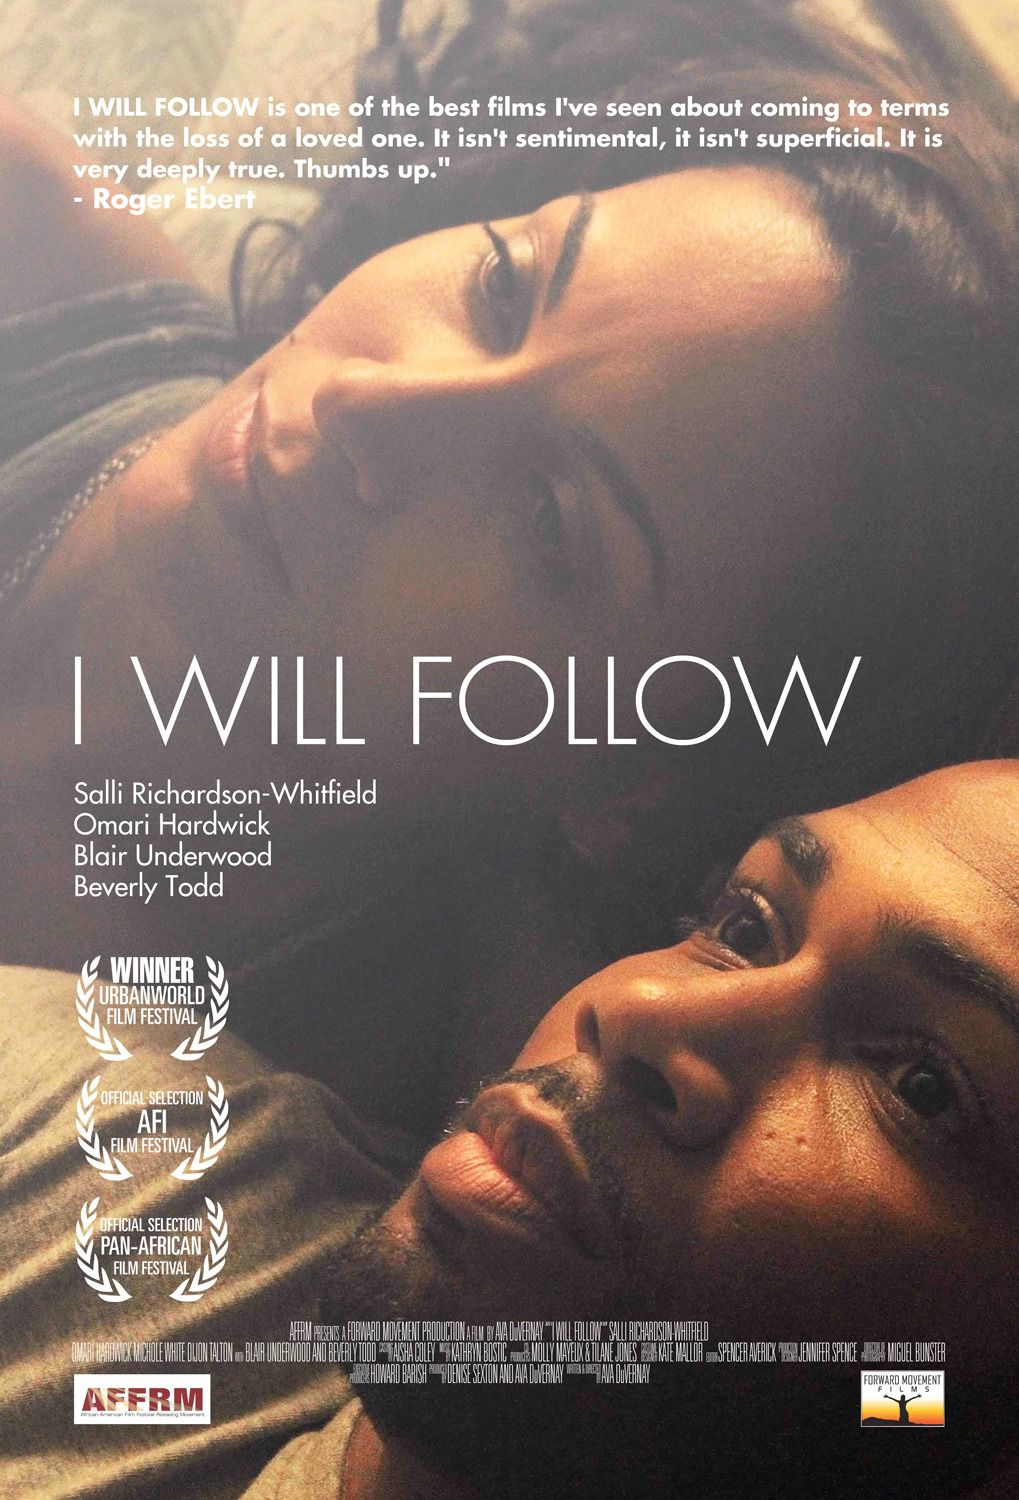 I will Follow by Ava DuVernay - film poster